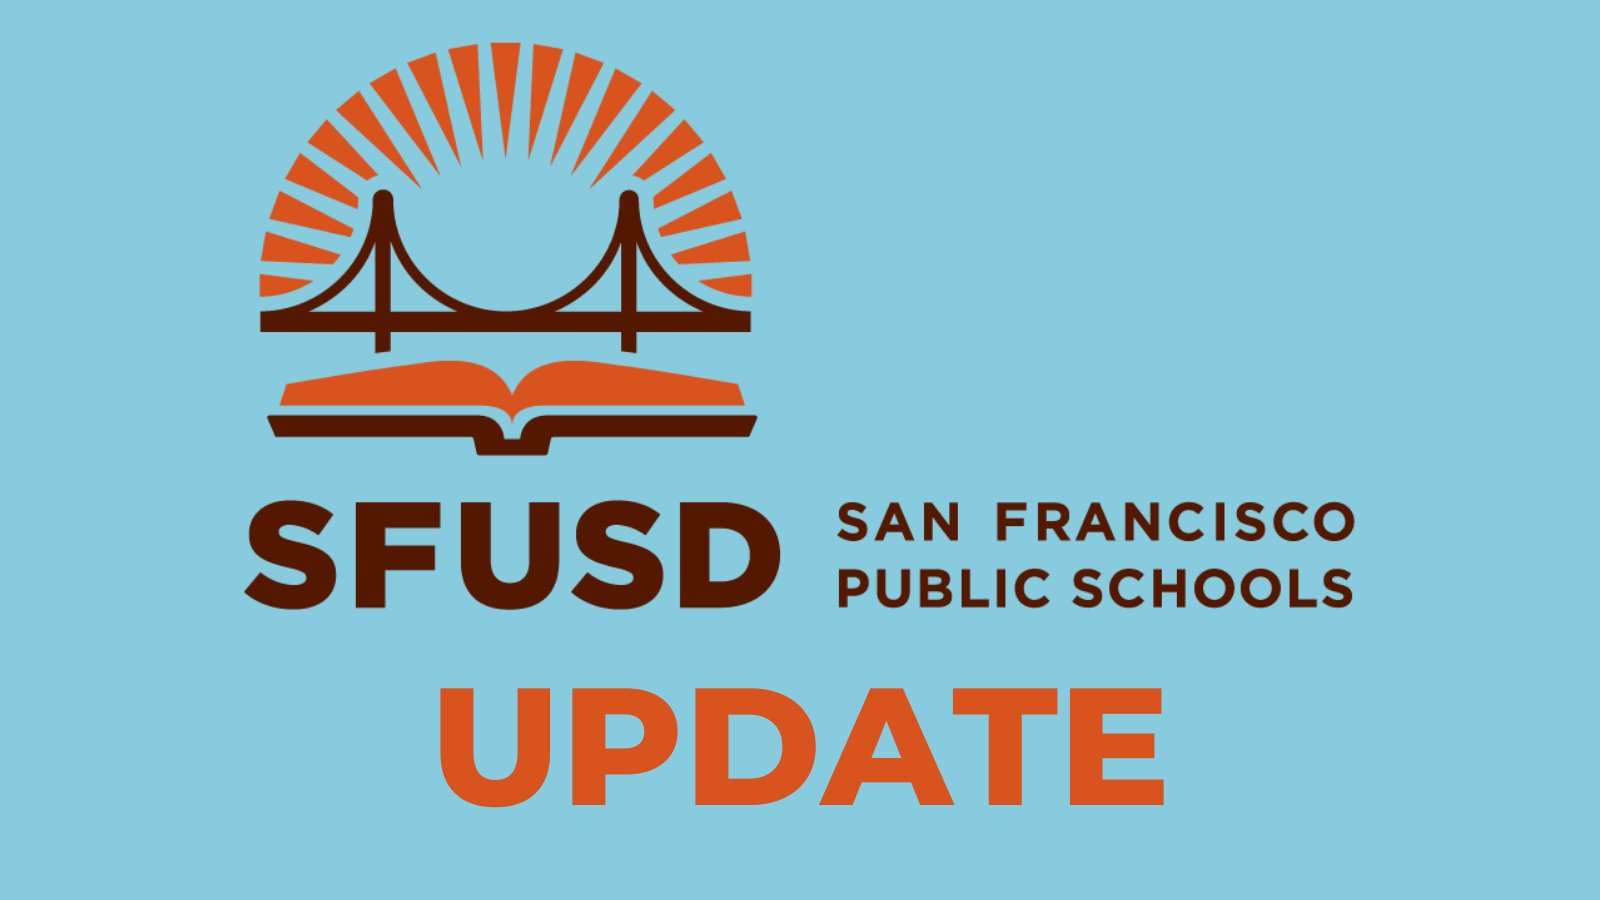 Sfusd Calendar 2022.Sf Public Schools On Twitter The 2021 2022 Academic Calendar Is Available Now Https T Co Svq7peo26b